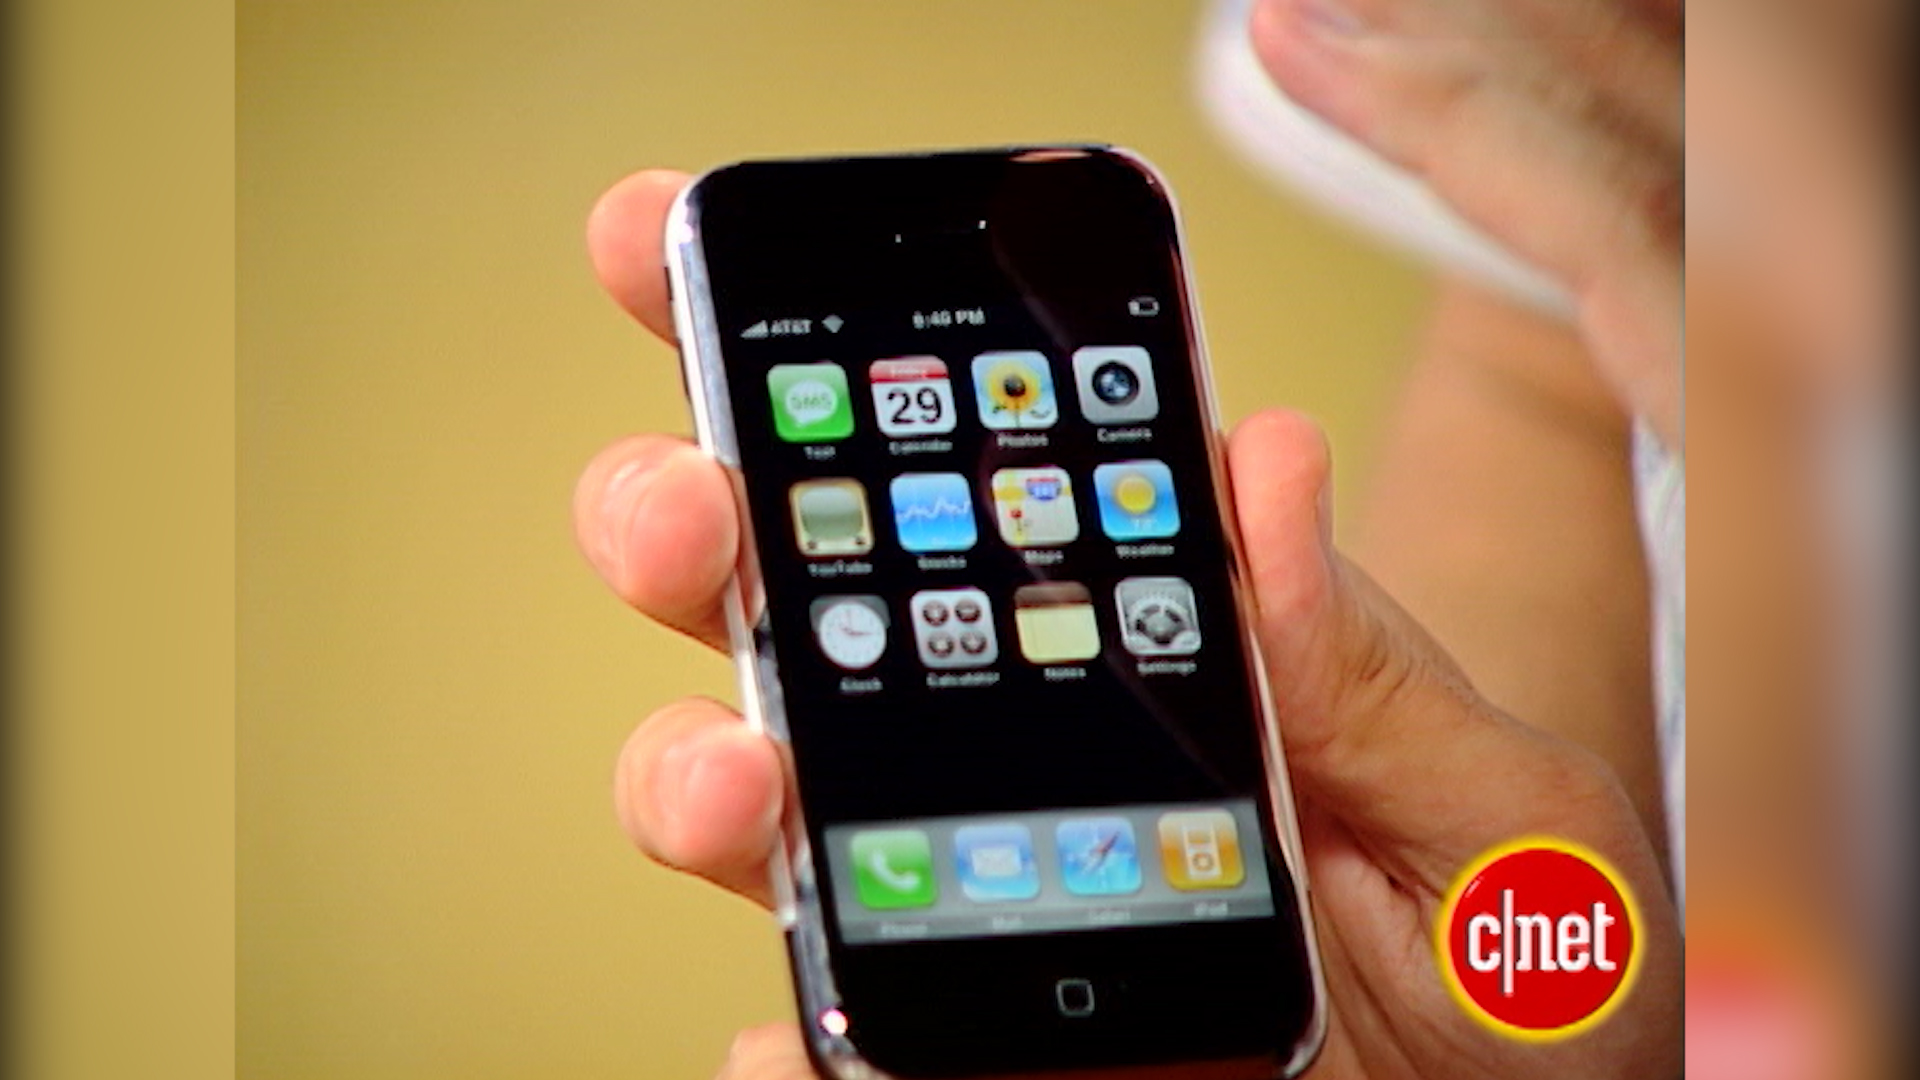 Video: Our first iPhone review: Nine years later